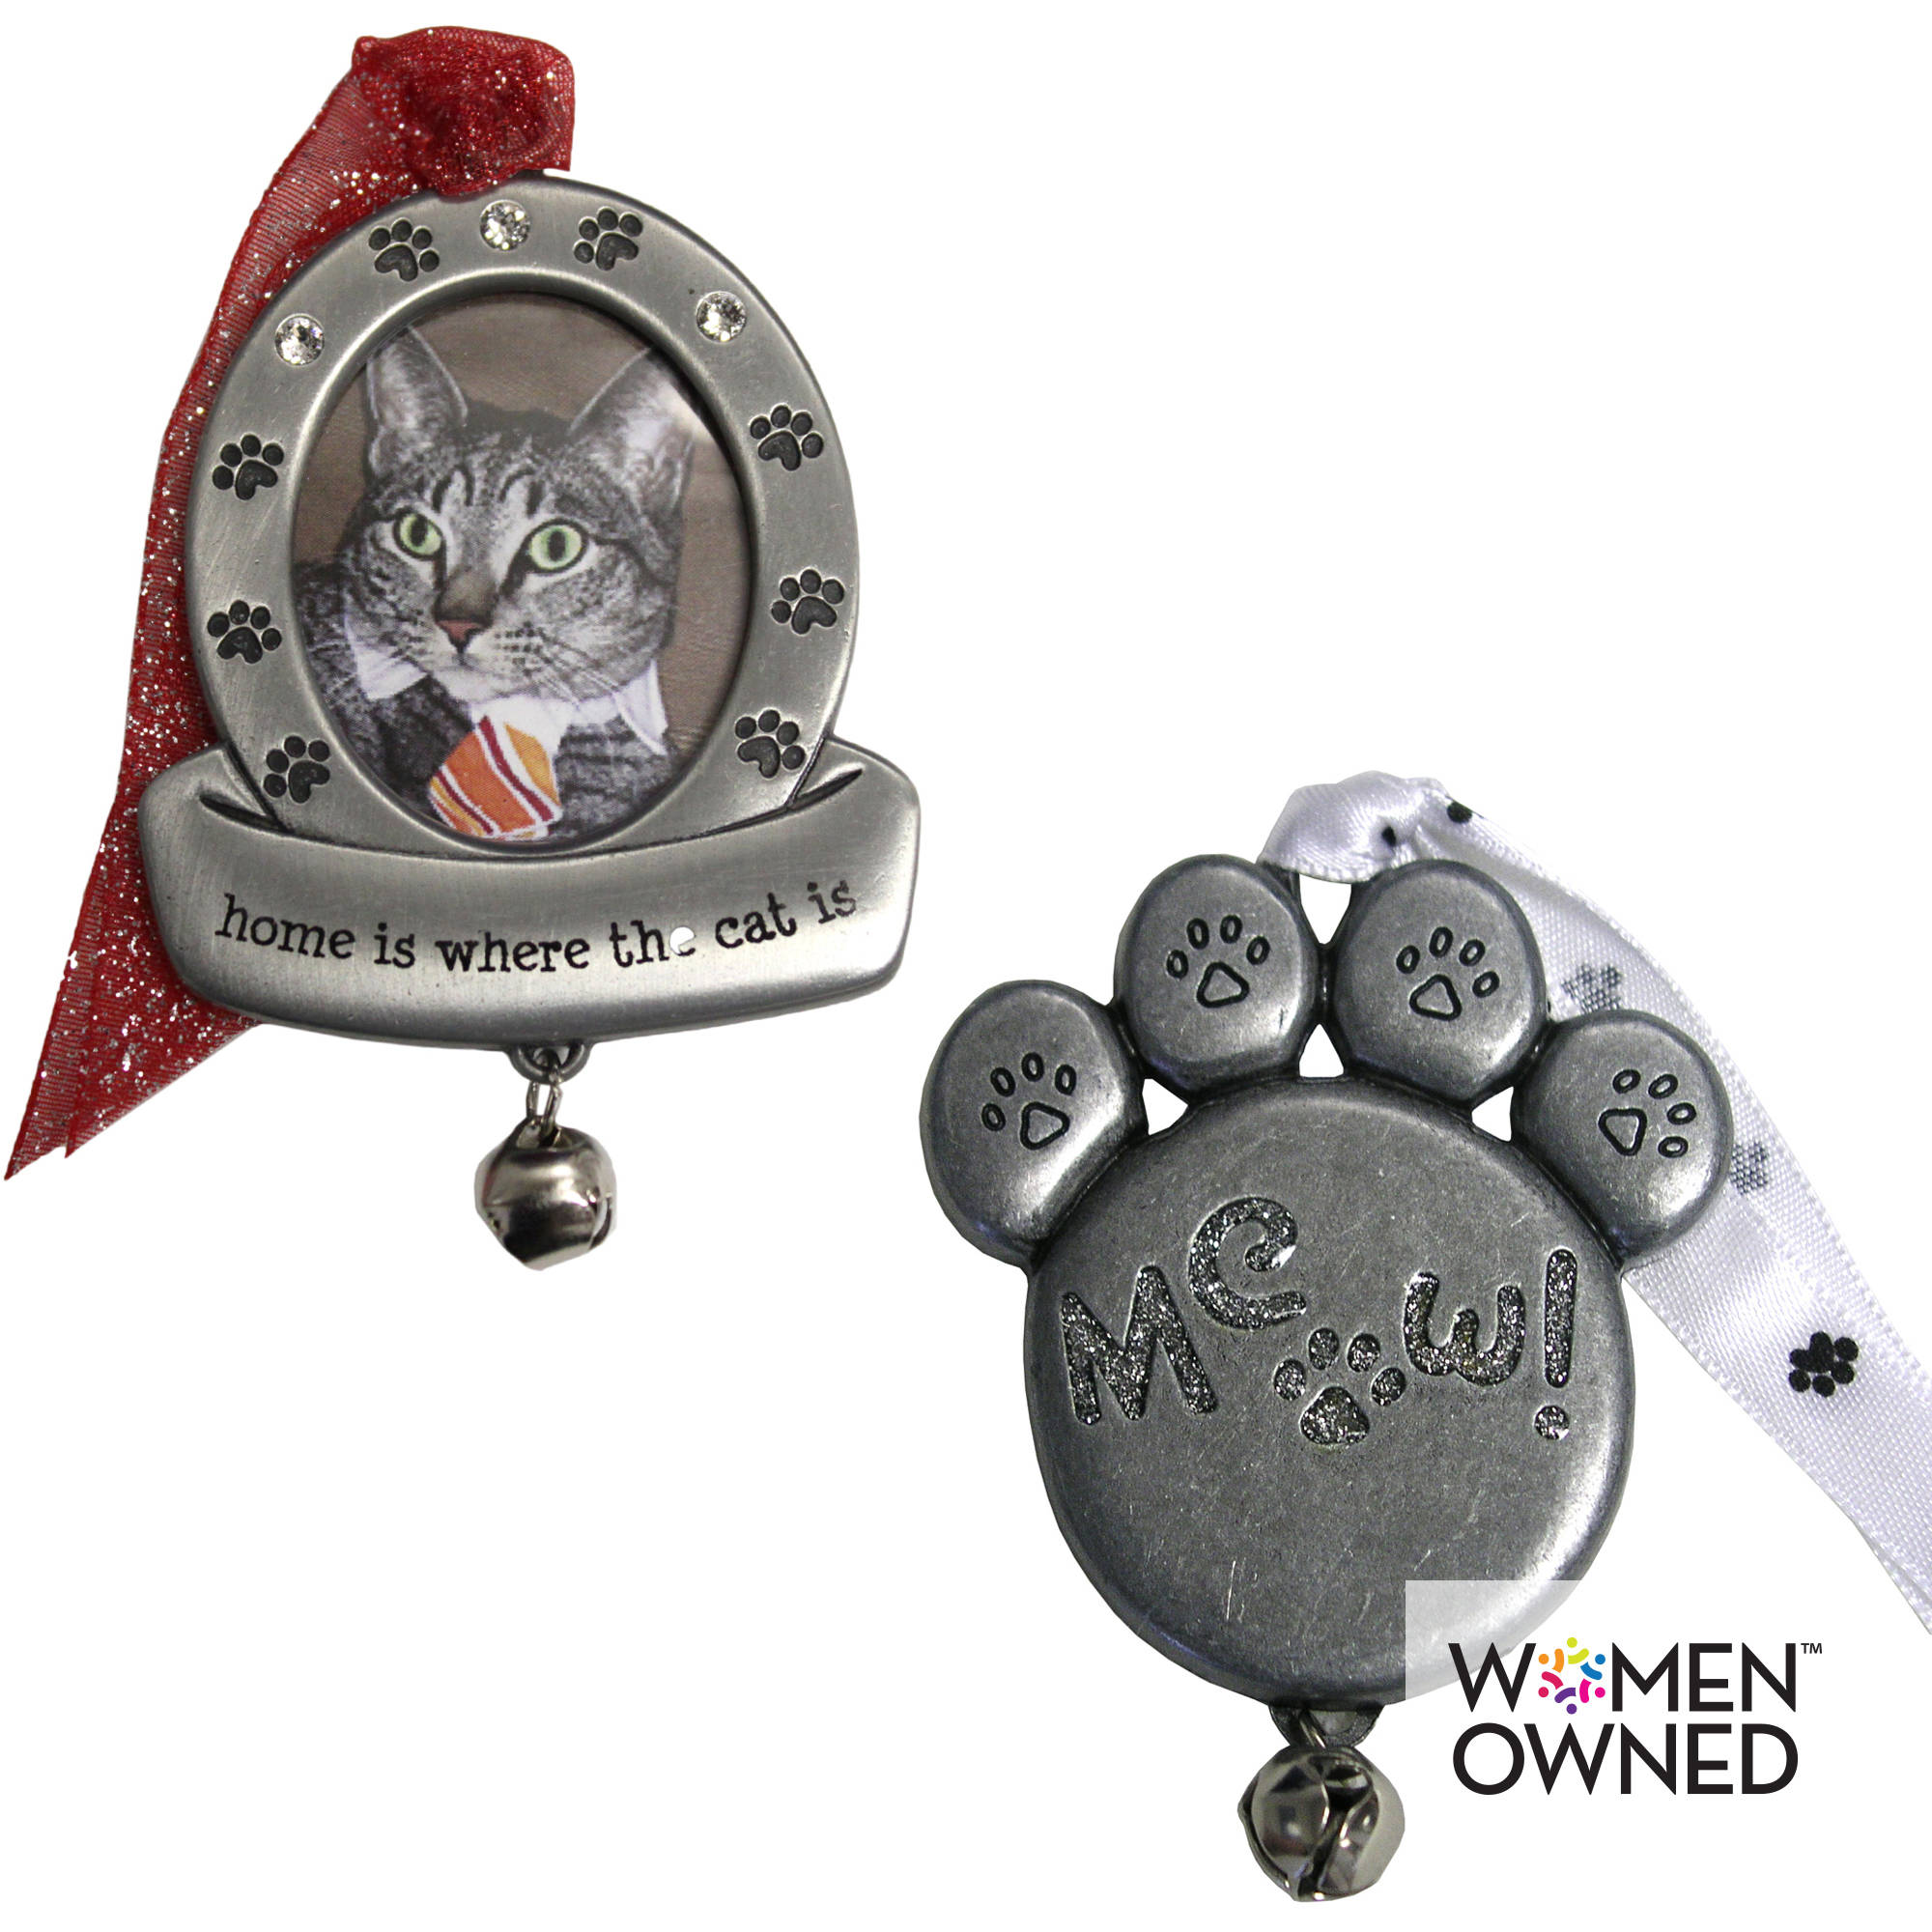 Personalized Gloria Duchin Cat Paw Ornament Set